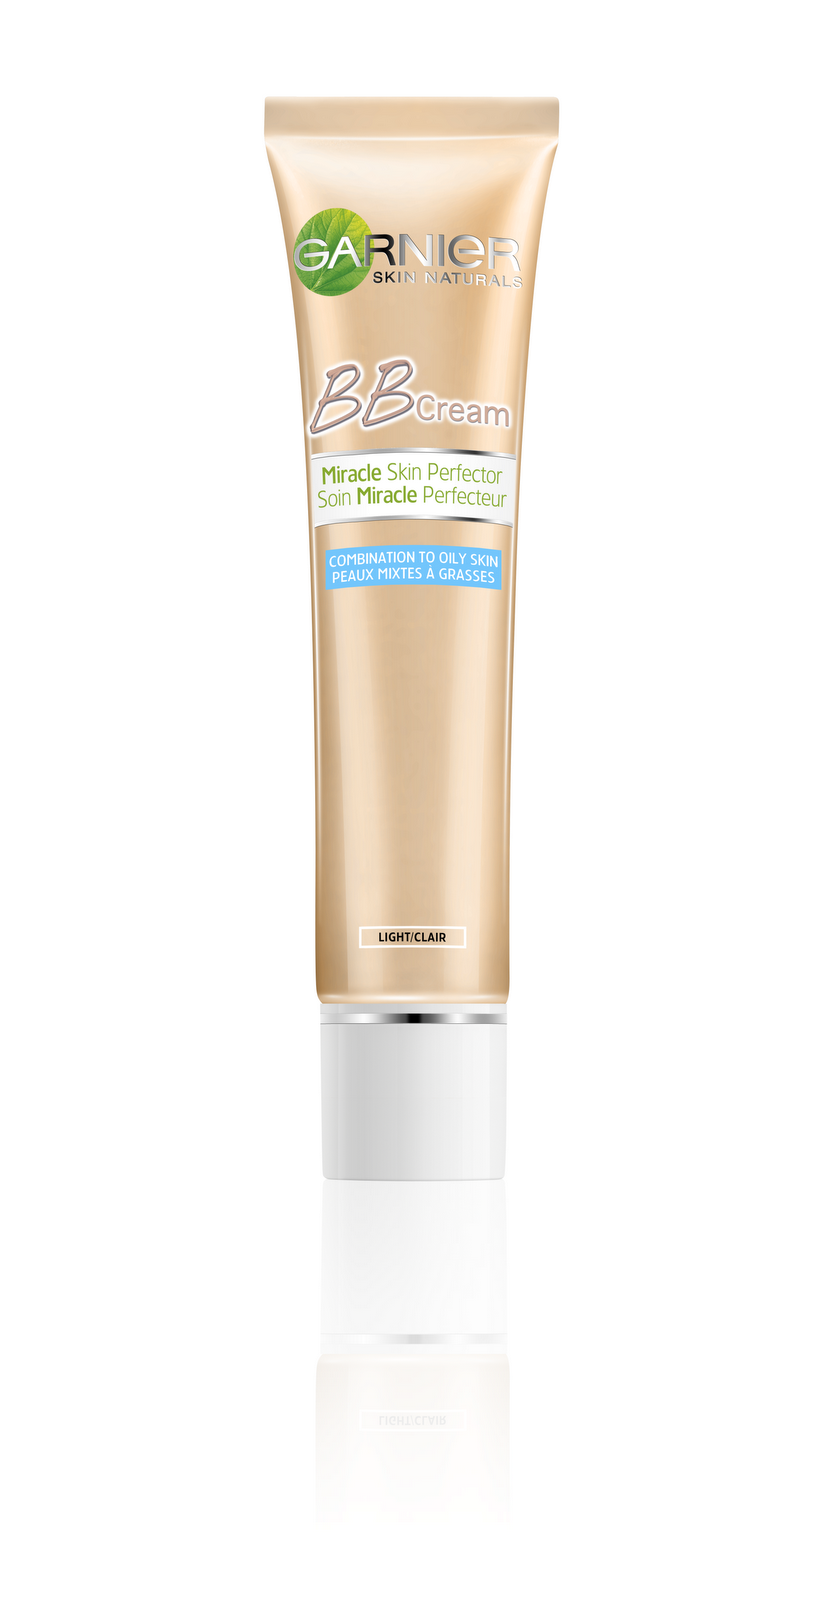 Garnier - BB Cream Oil Free Miracle Skin Perfector